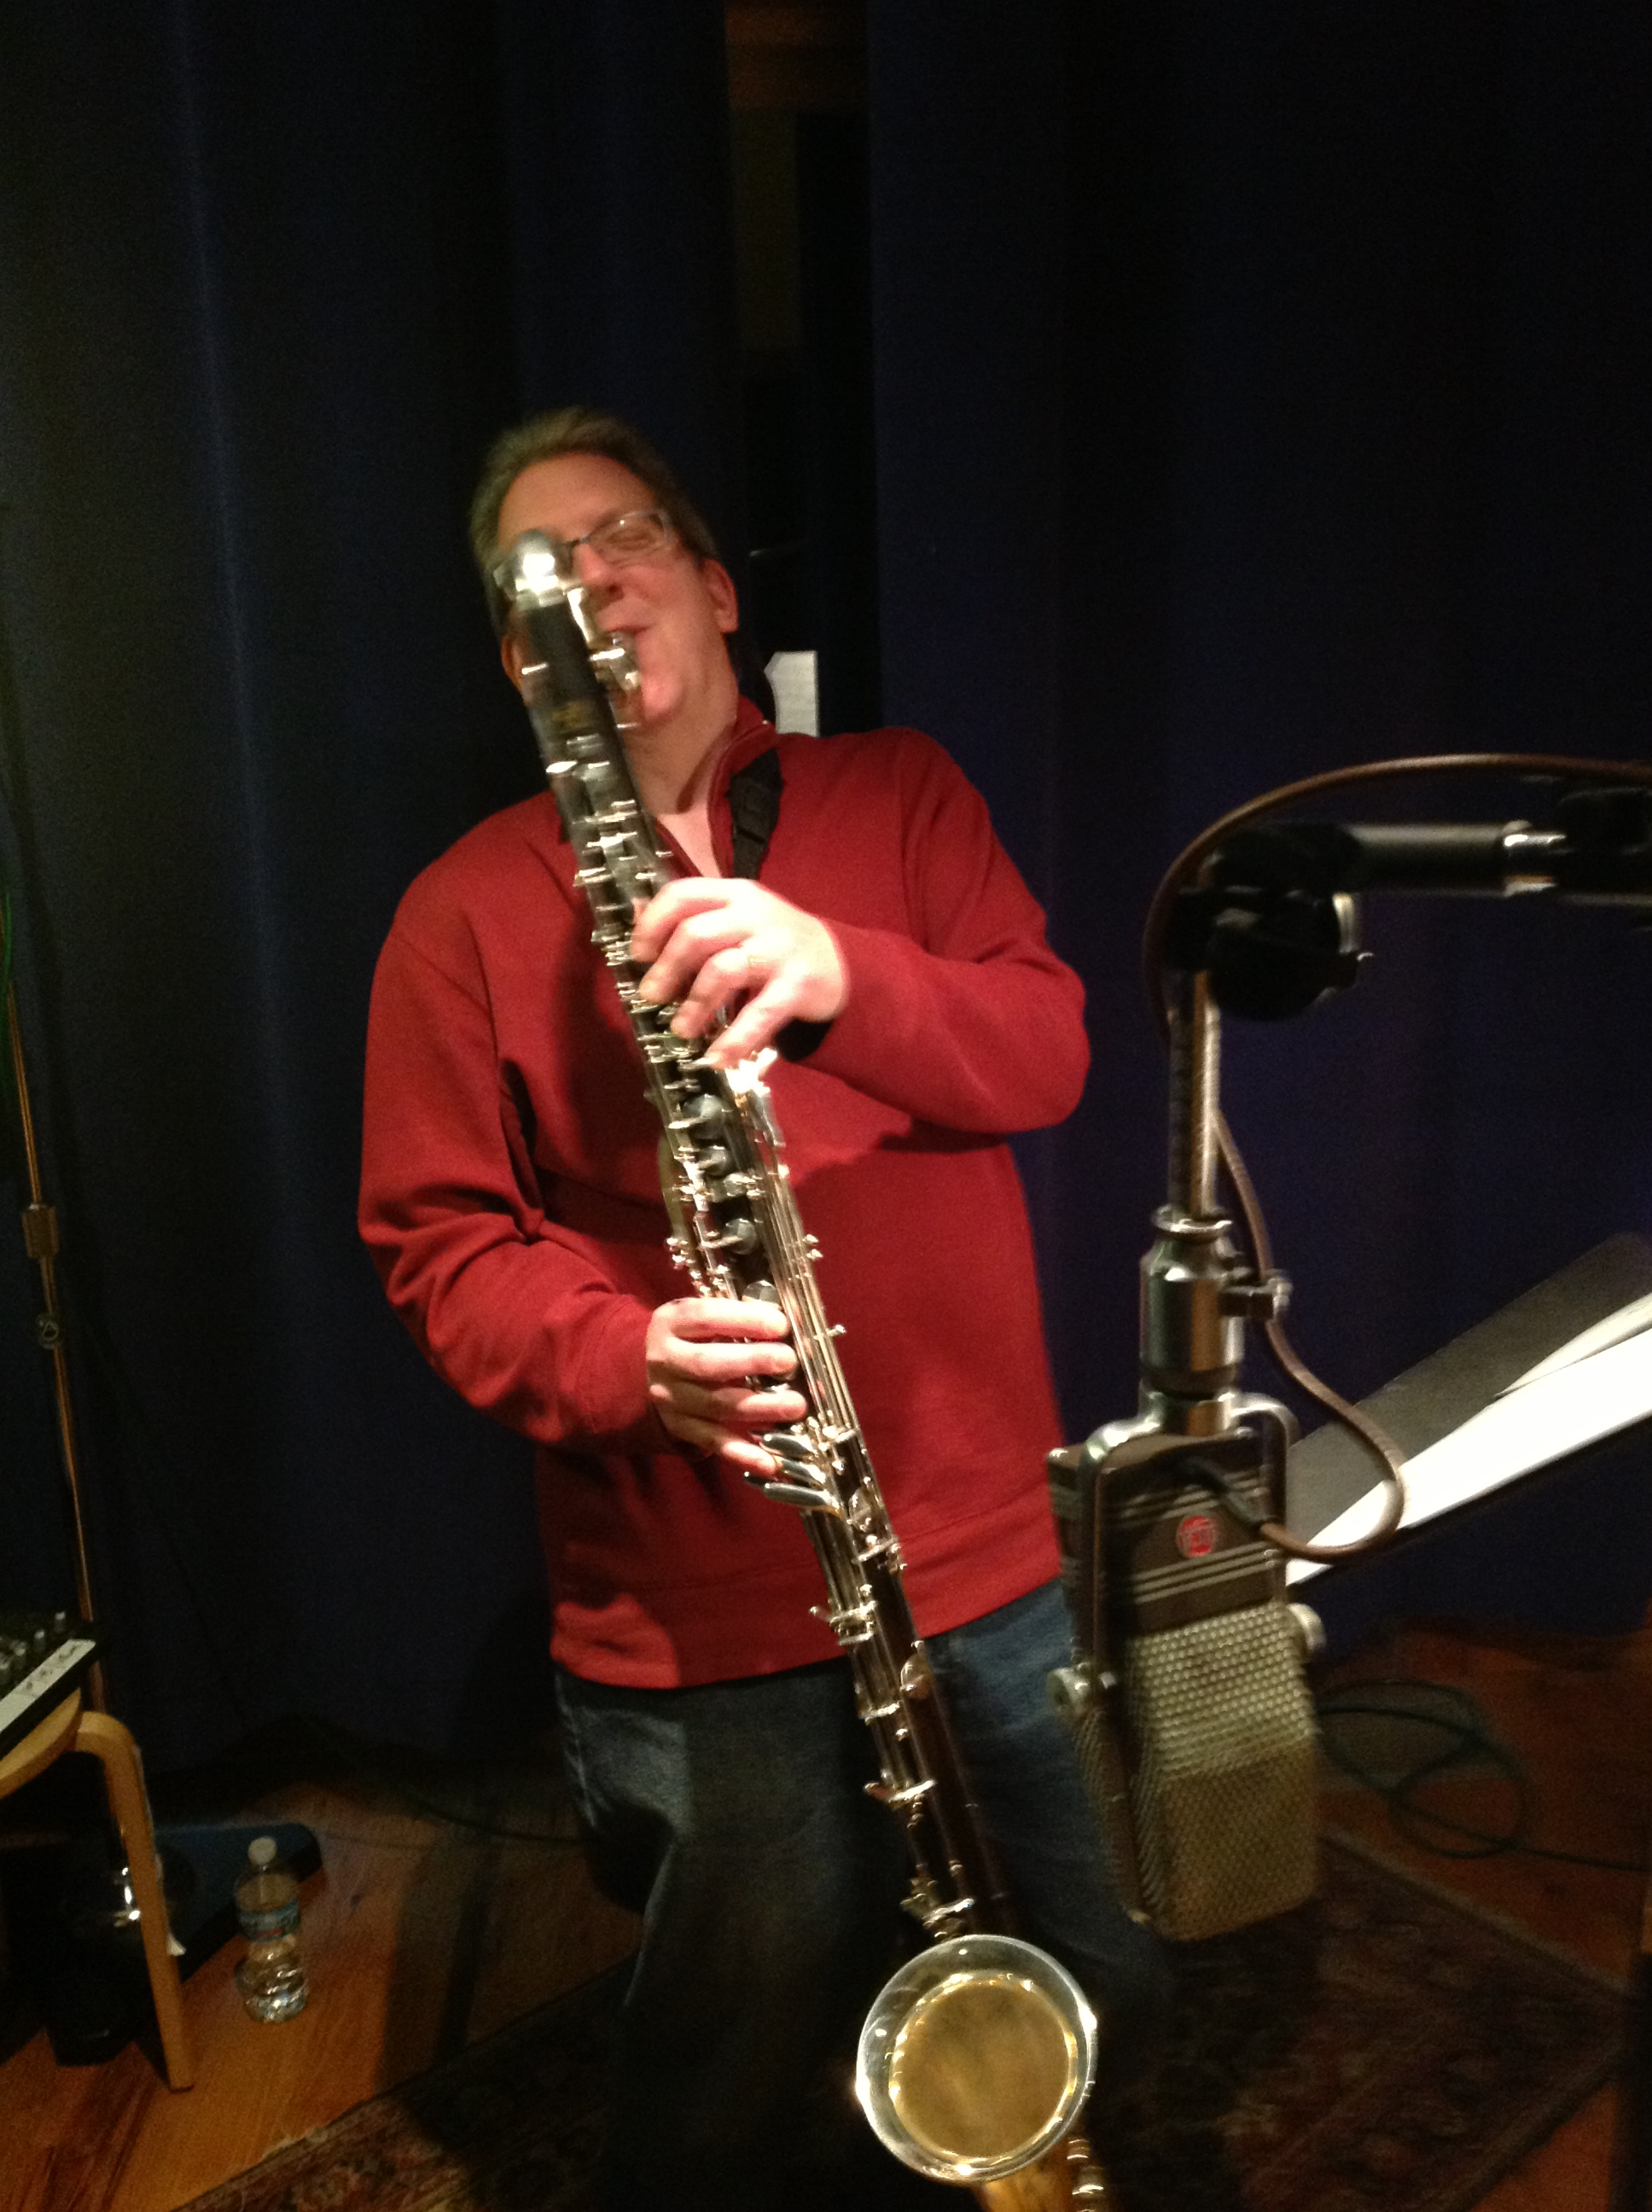 Caption: Pat O'Keefe with bass clarinet, Credit: Scott Miller